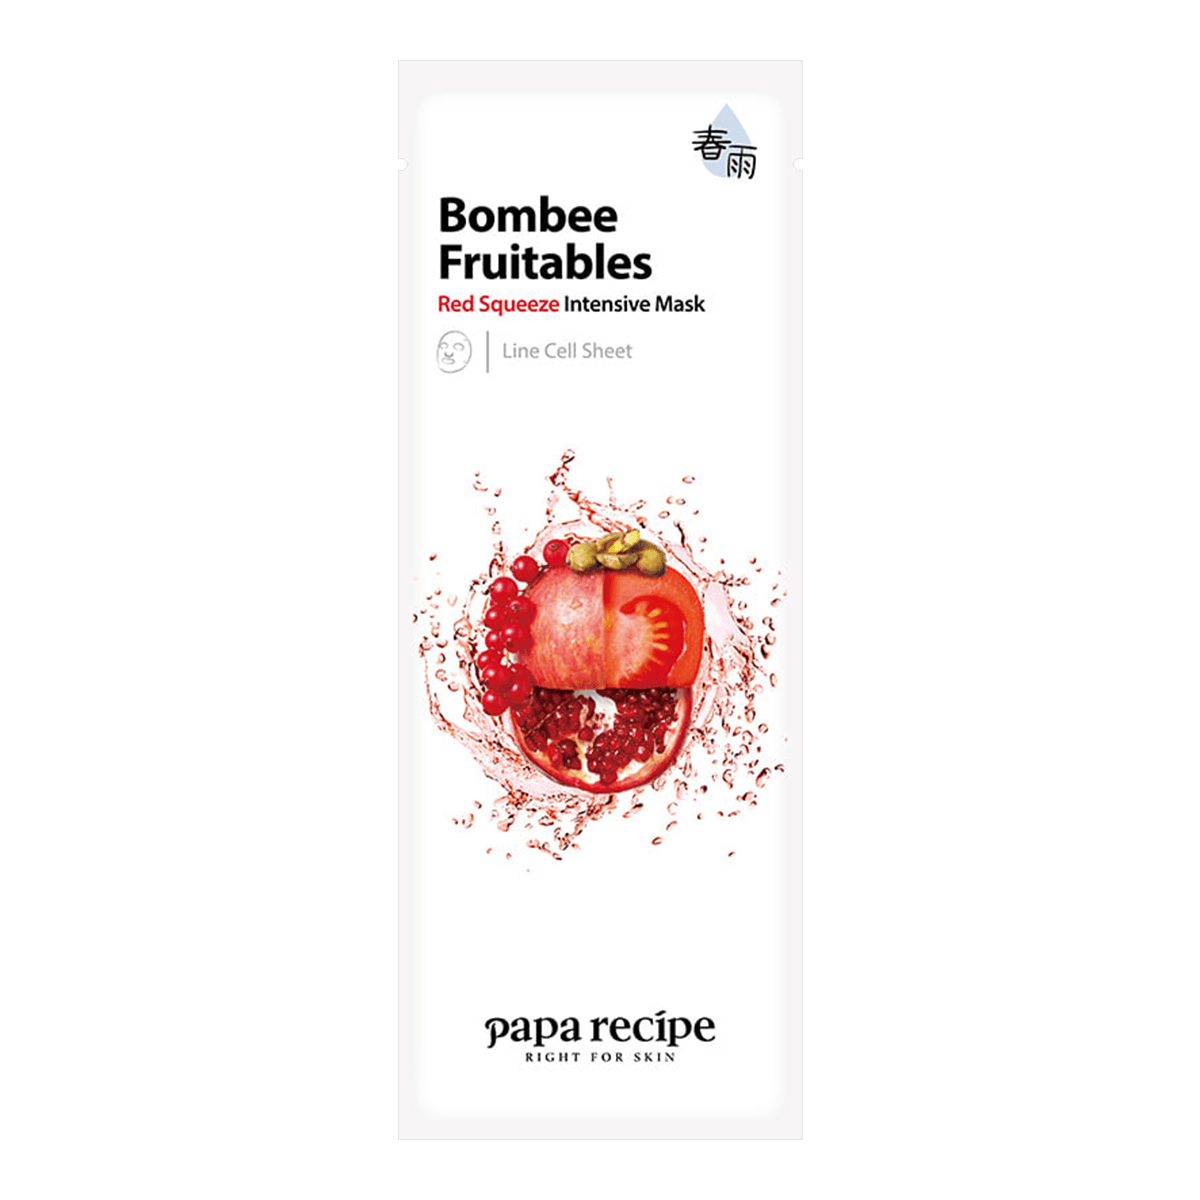 PAPA RECIPE Bombee Fruitables Red Squeeze Intensive Mask 1 sheet